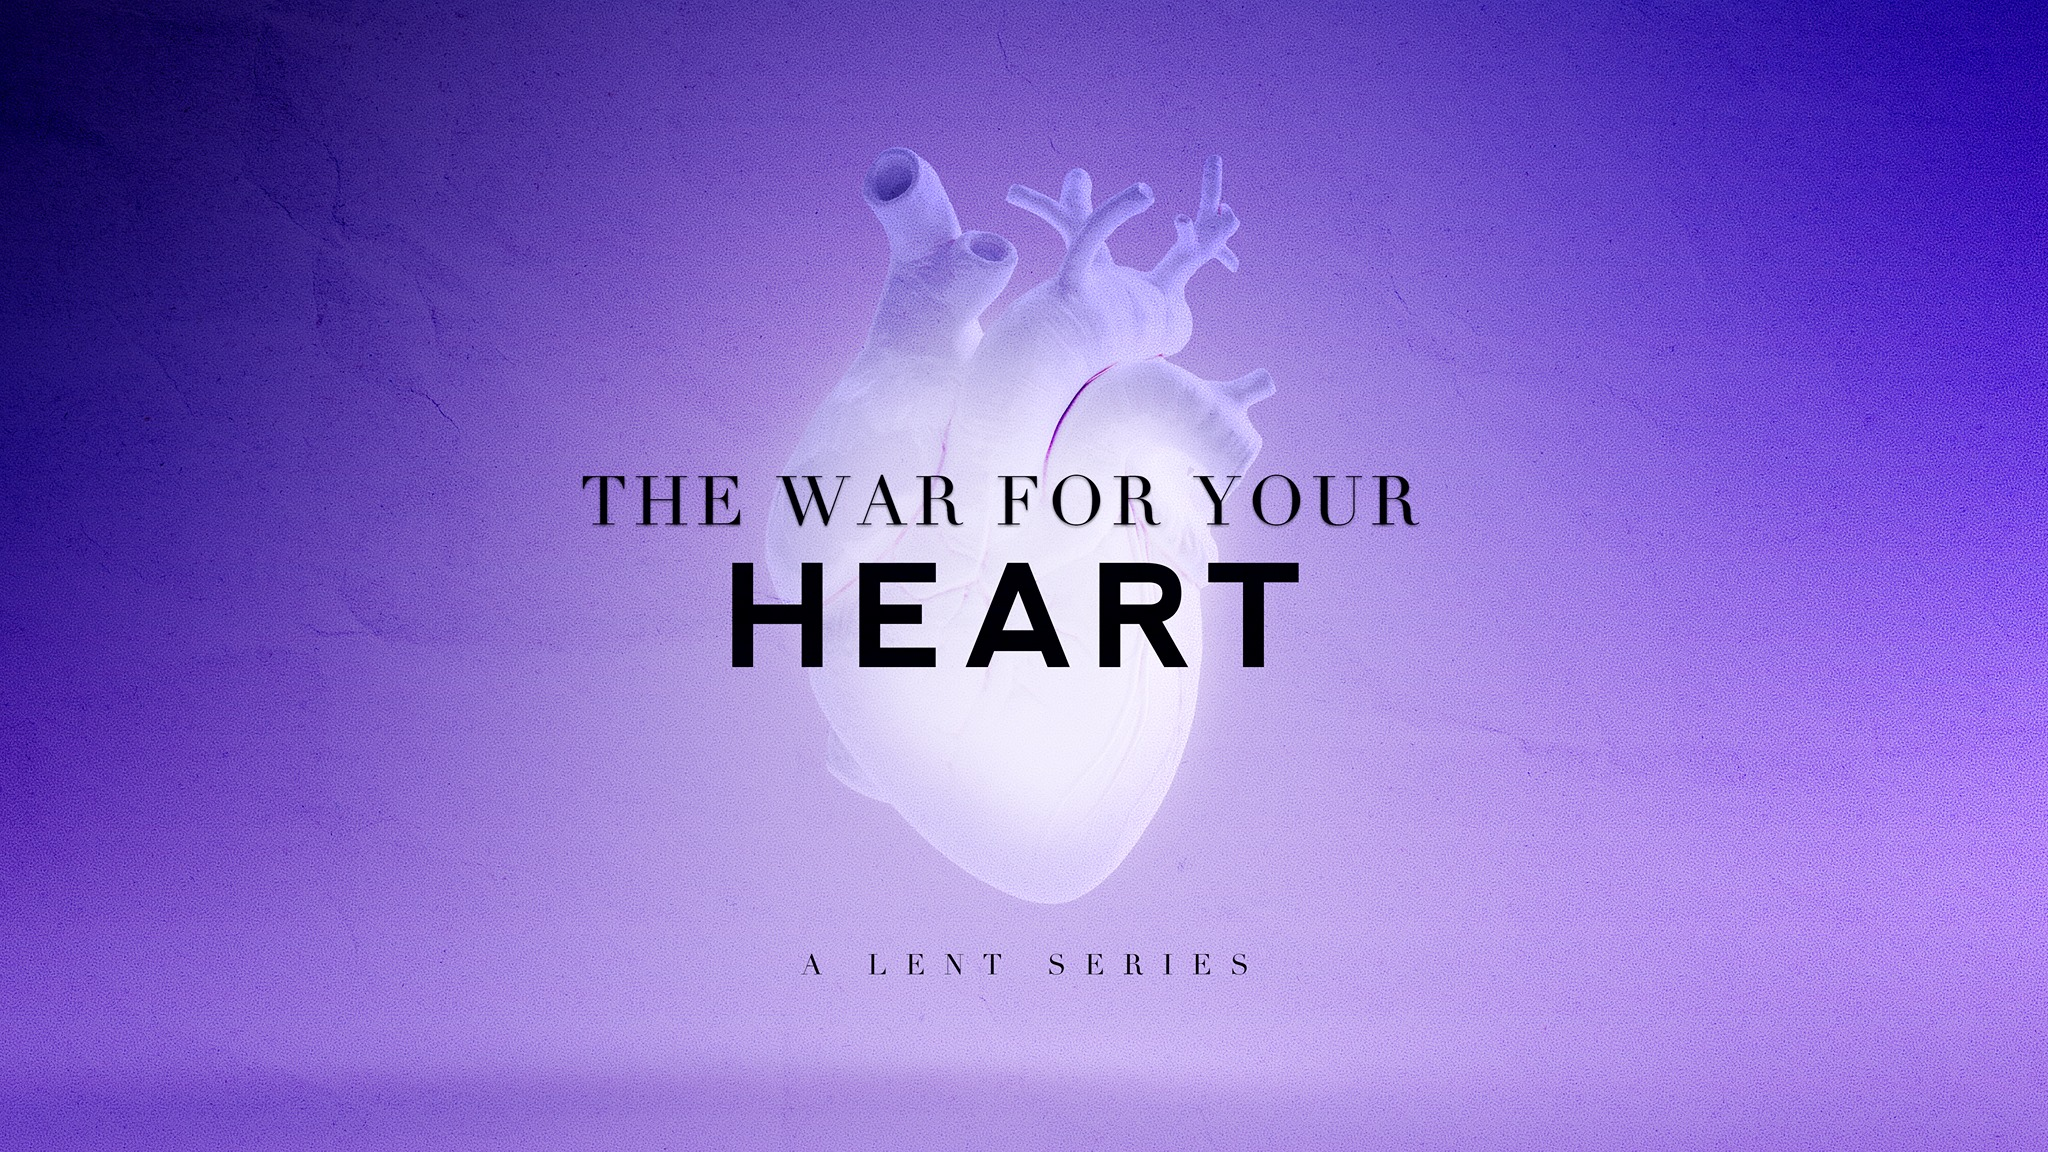 The War for Your Heart